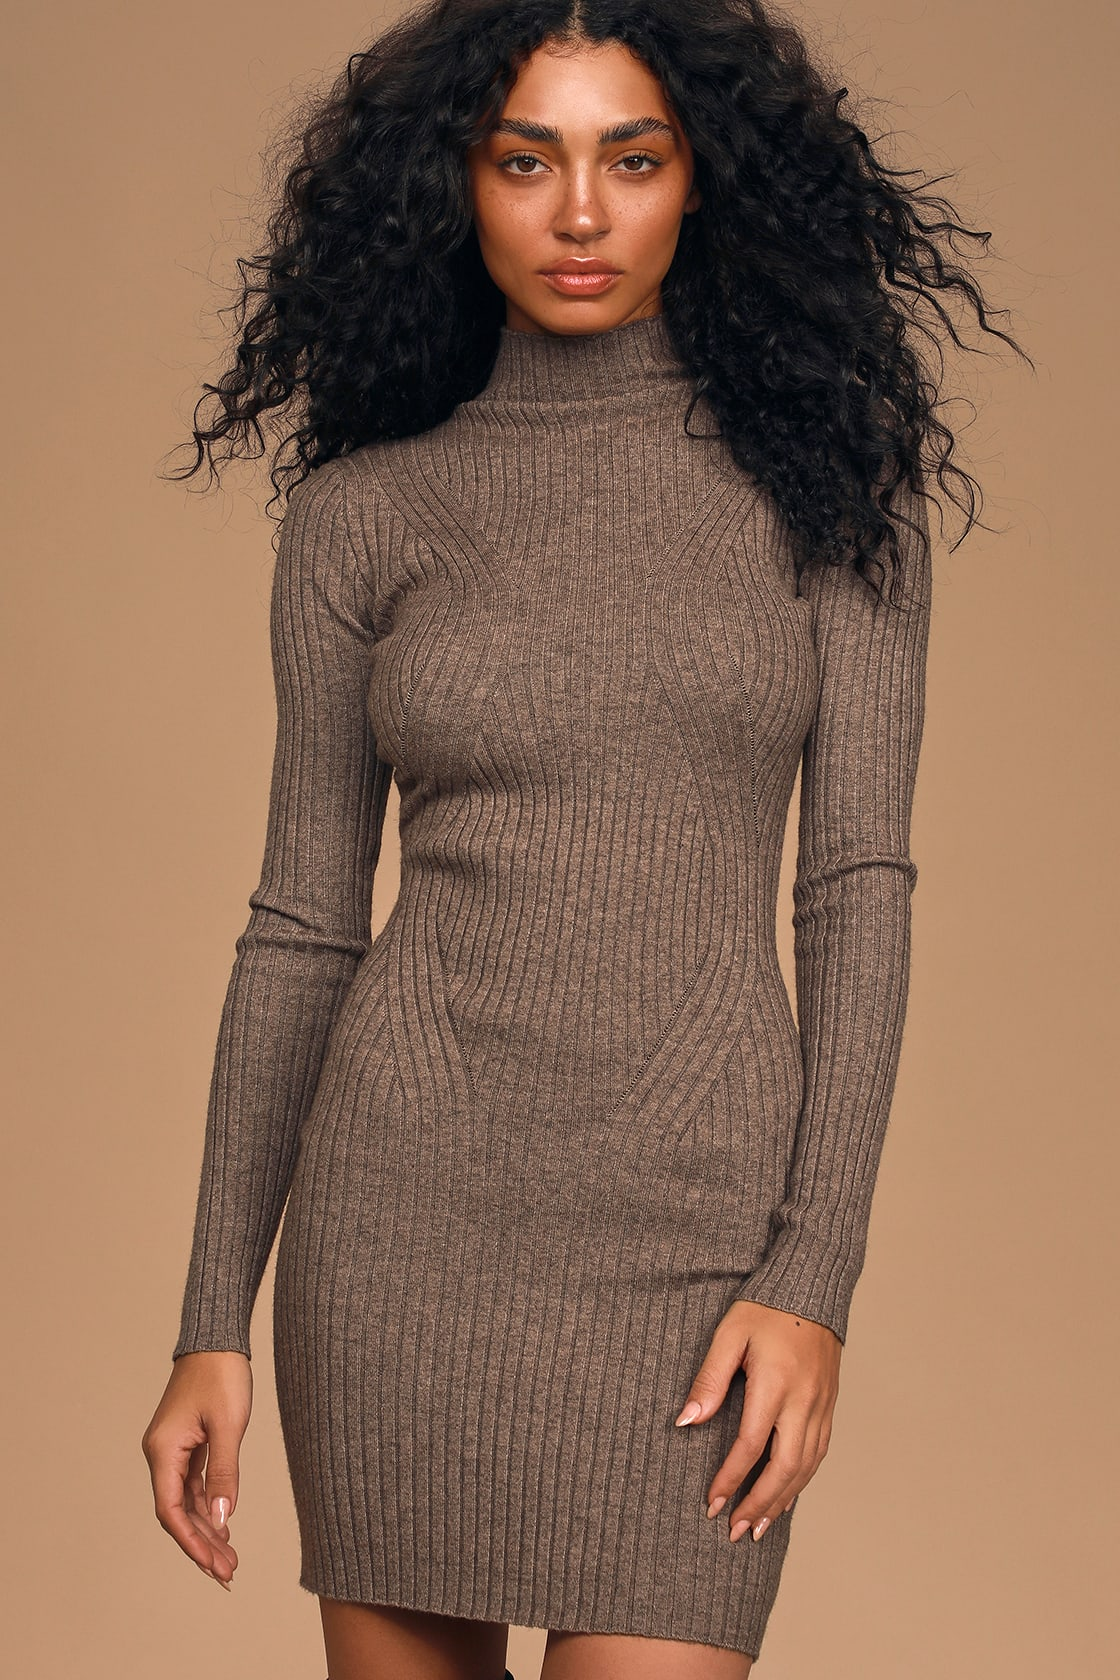 Snug As Can Be Heather Taupe Ribbed Mock Neck Sweater Dress